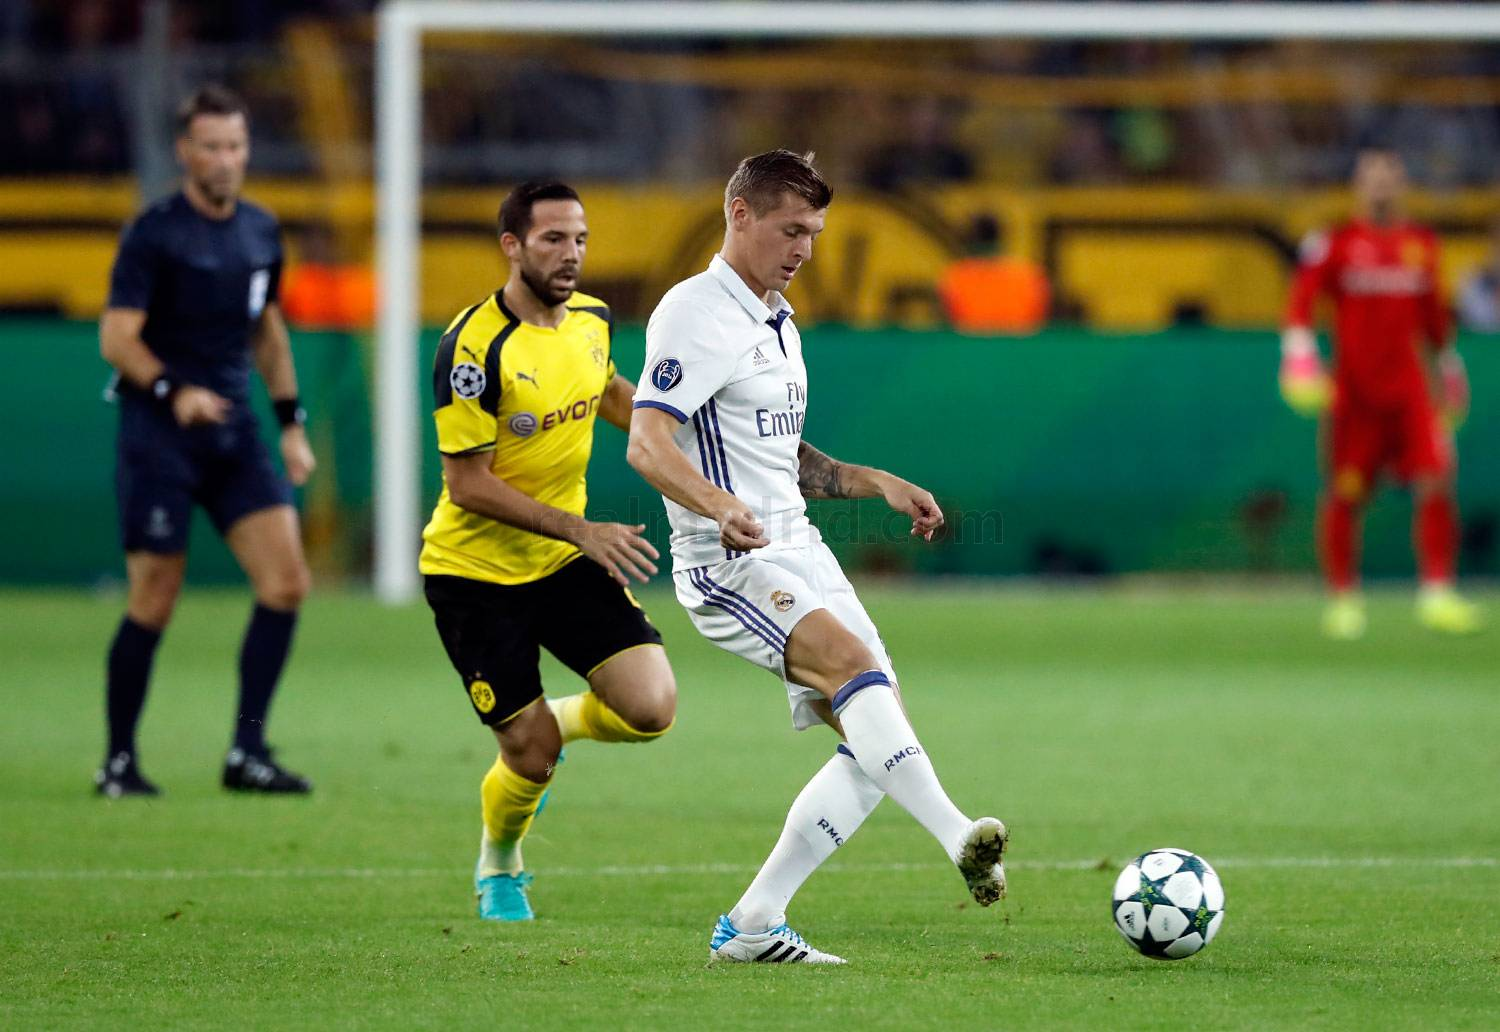 Borussia Dortmund - Real Madrid